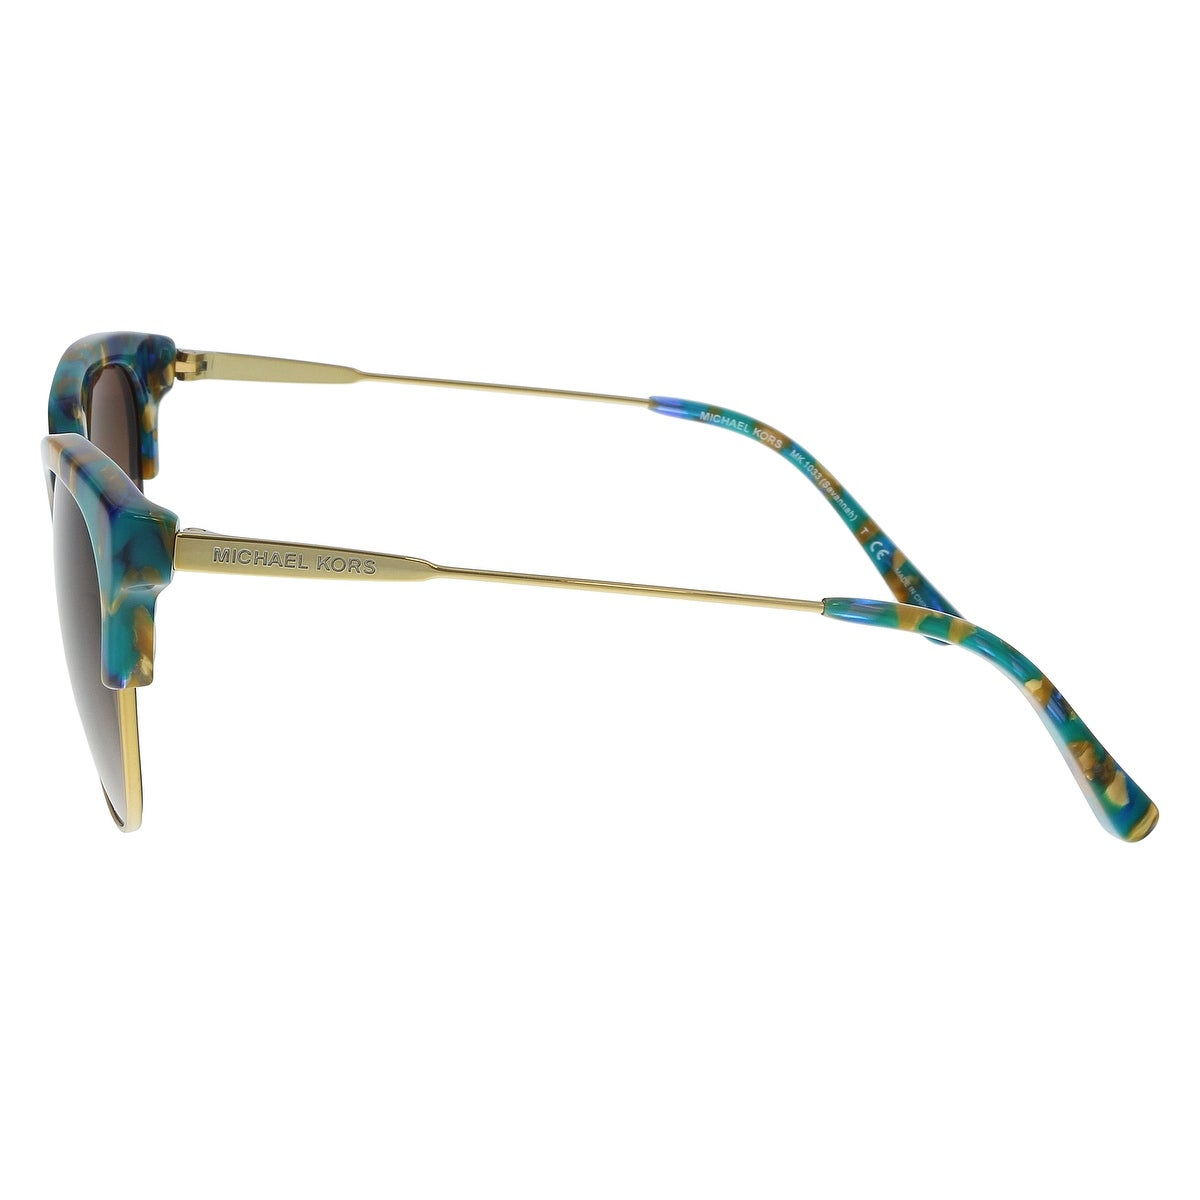 c63829a150d9 Shop Michael Kors MK1033 334413 Teal Mosaic / Pale Gold Cat eye Sunglasses  - 54-18-140 - Free Shipping Today - Overstock - 21164051